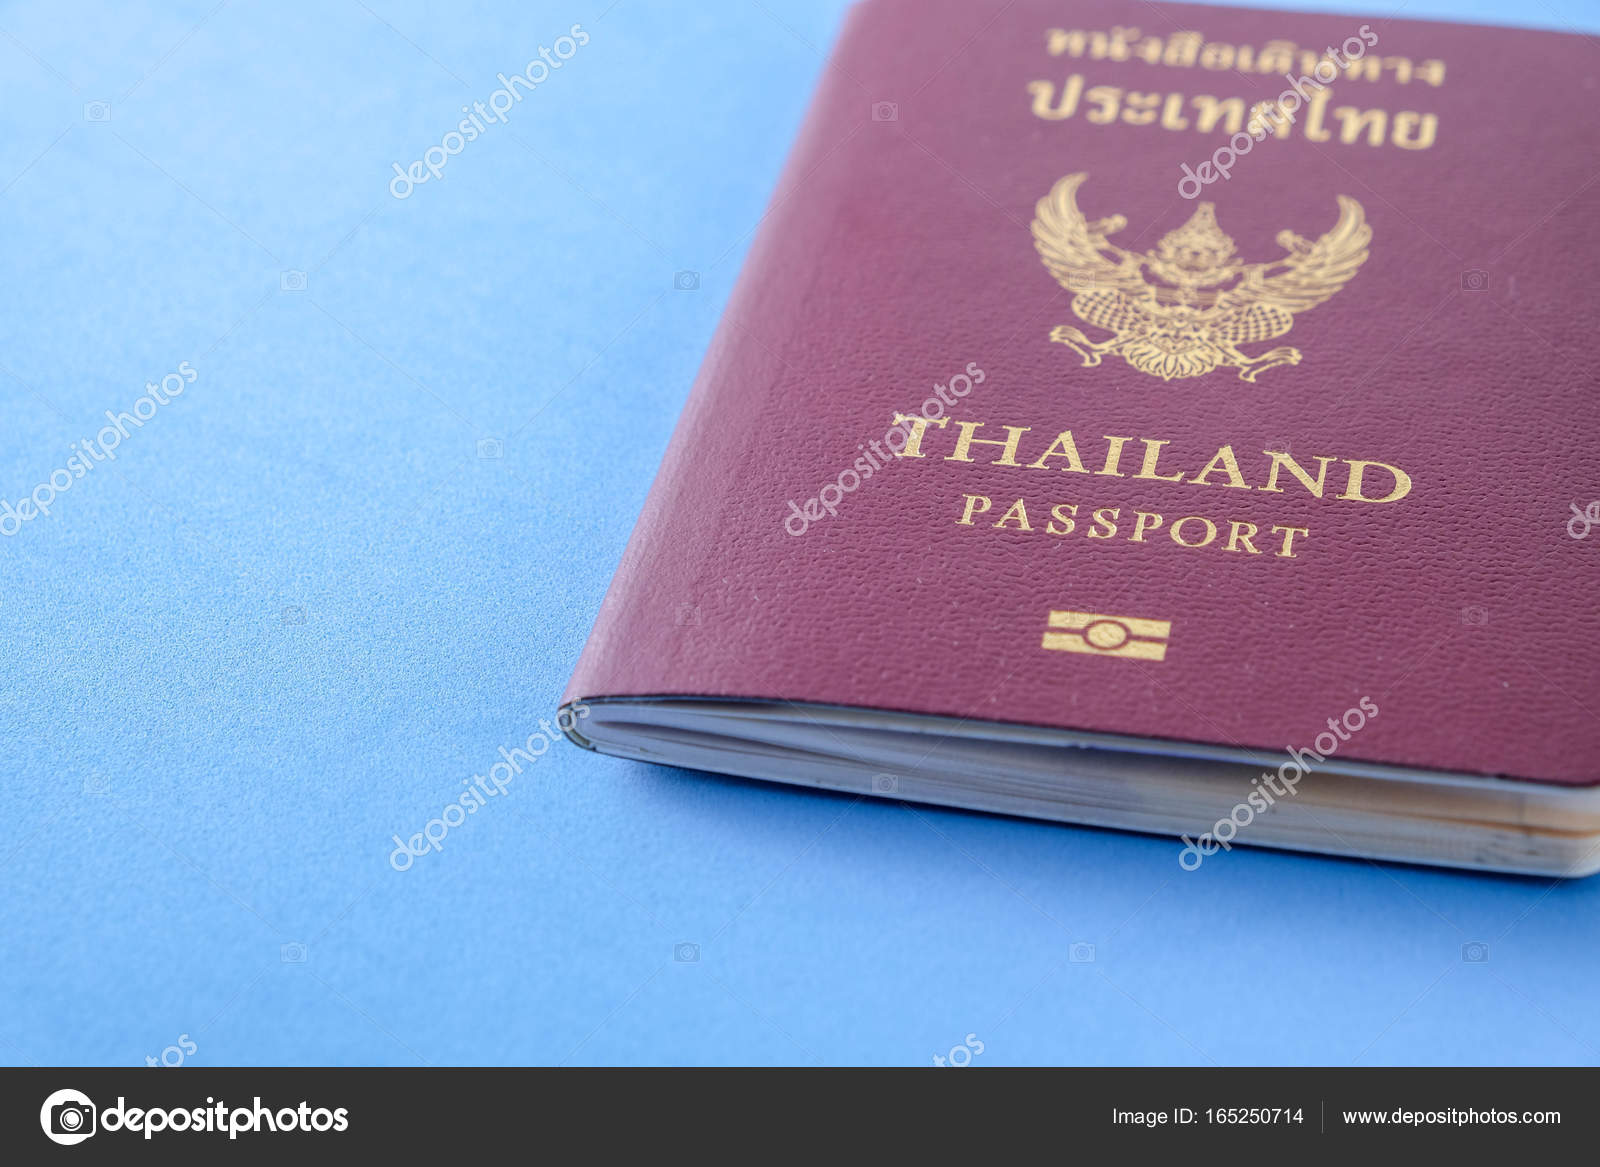 Thailand passport brown cover on blue paper background for